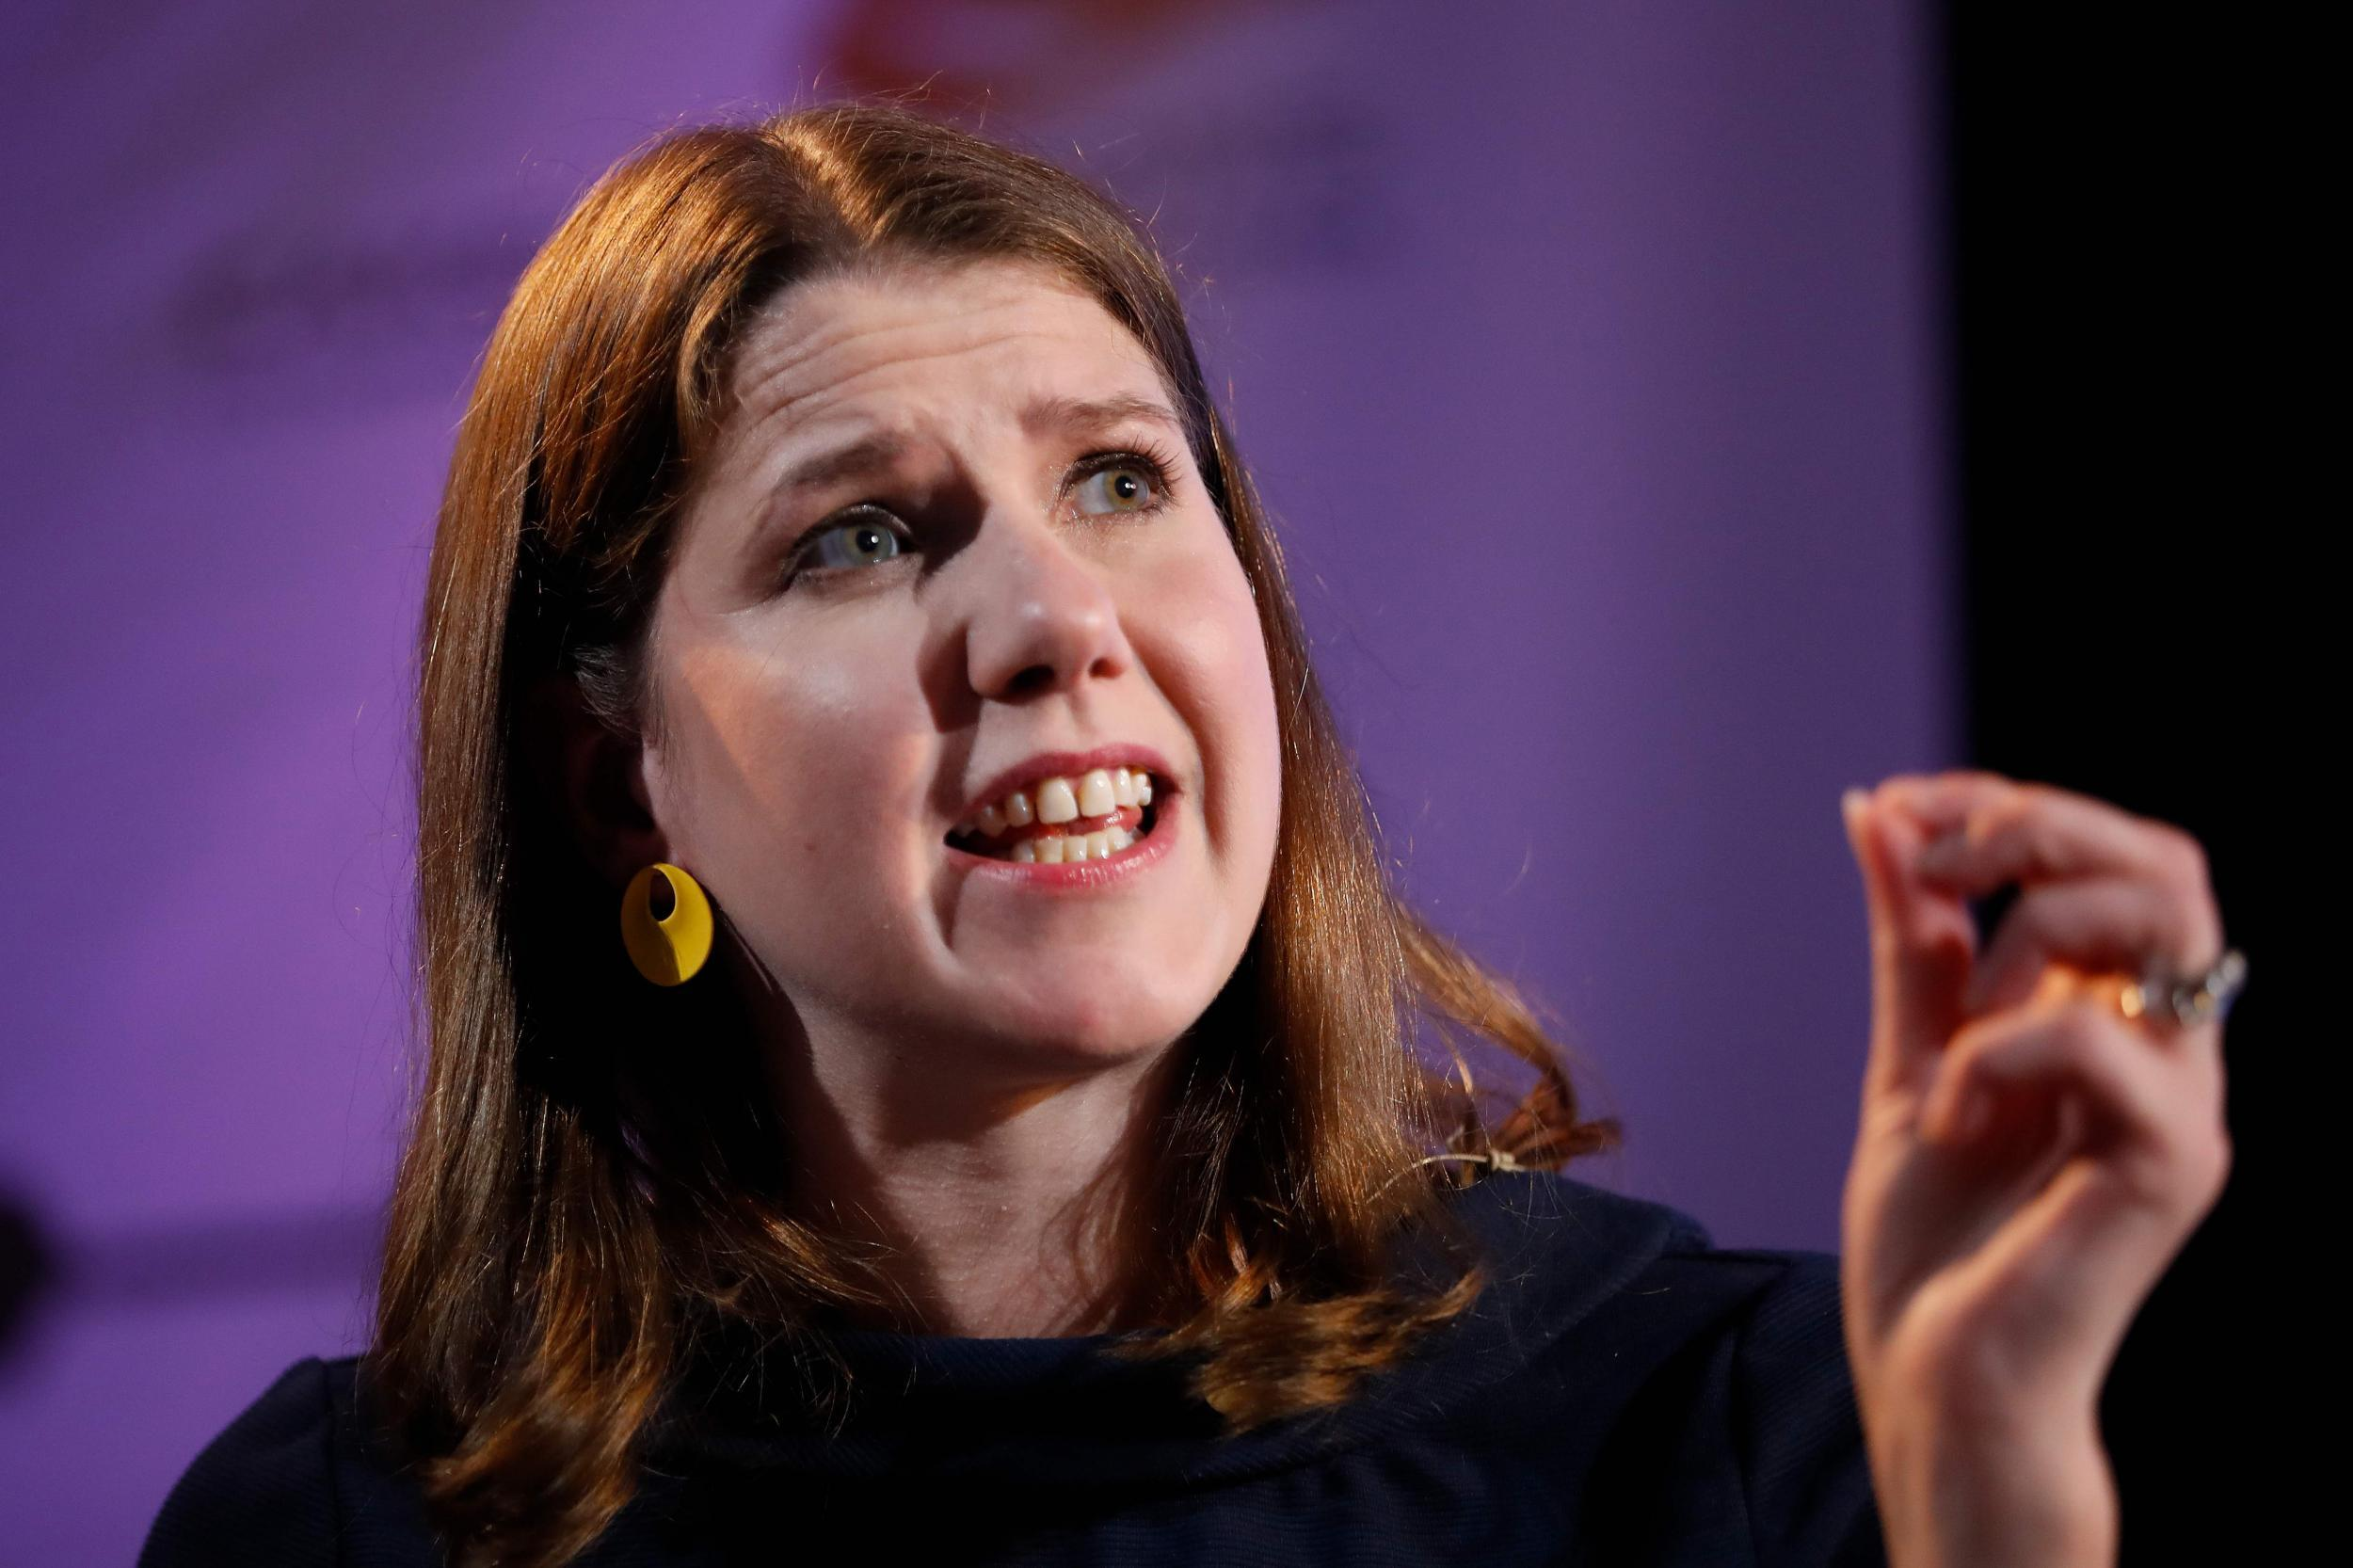 Swinson urges Corbyn to give up hopes of leading unity government if Johnson is ousted